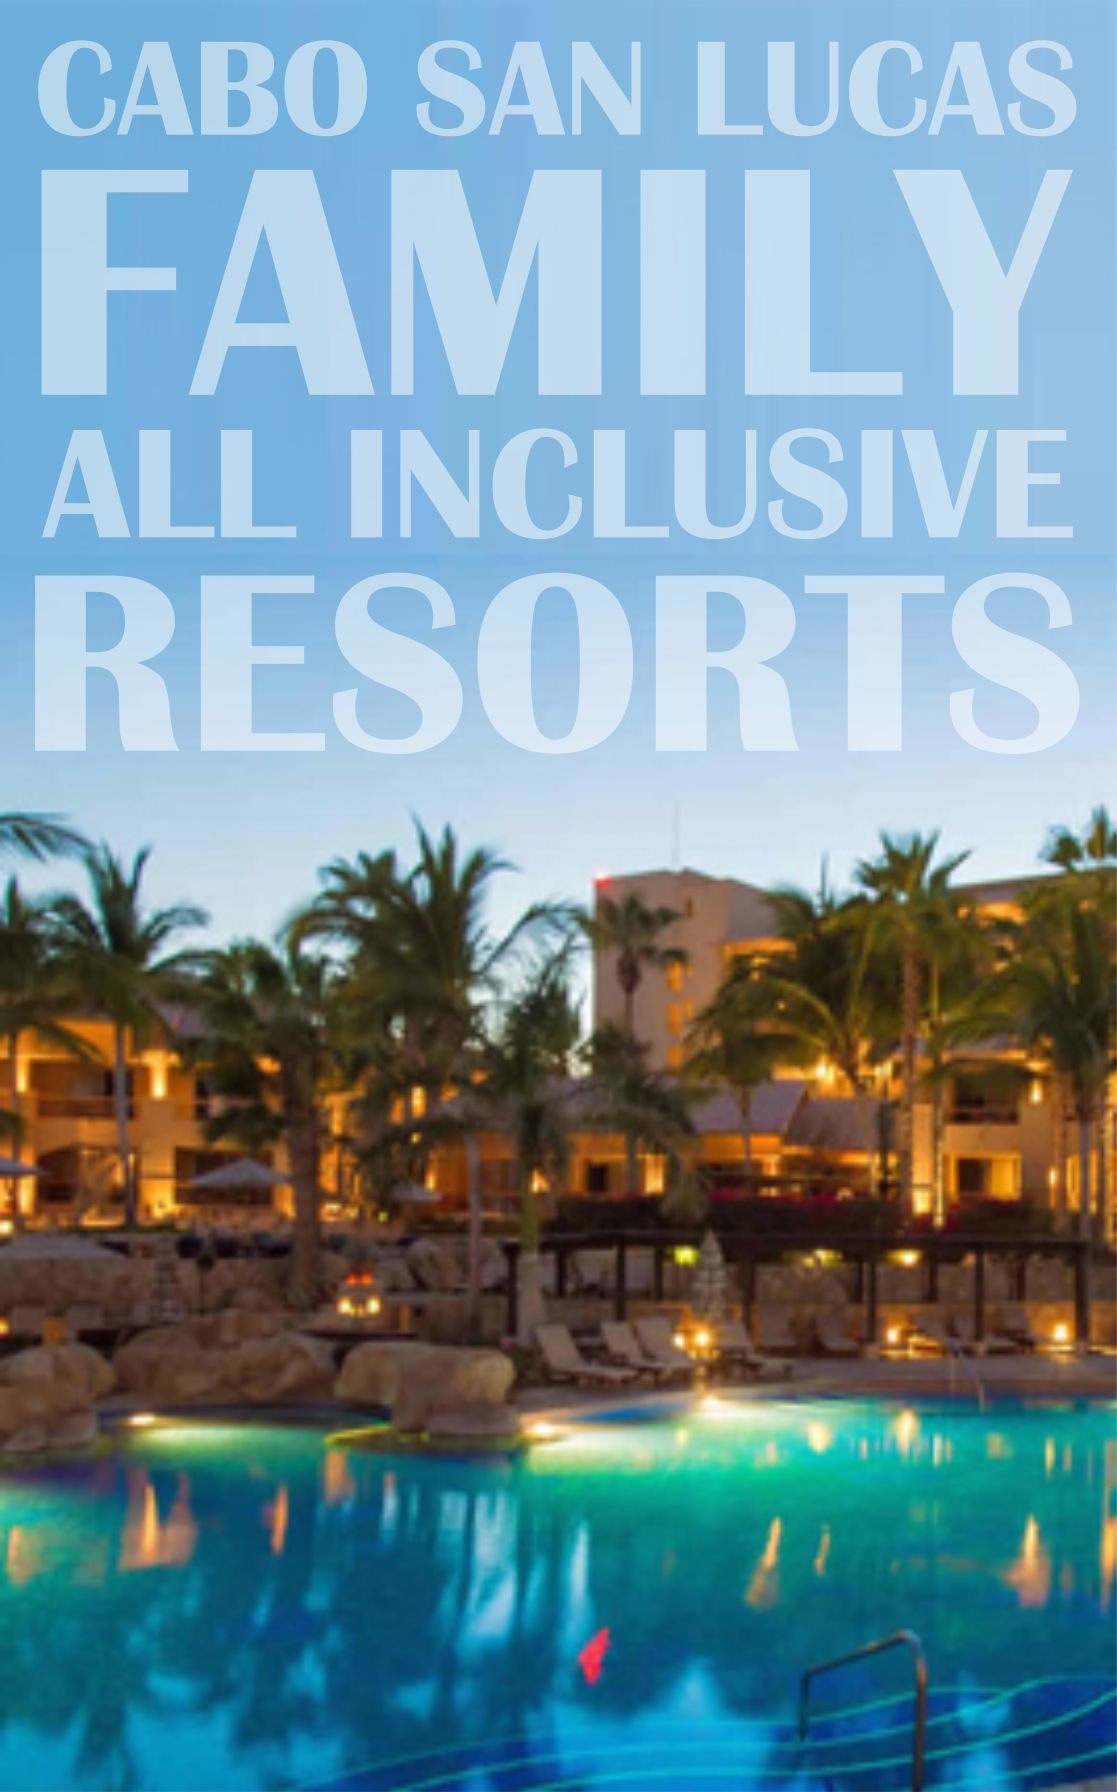 Cabo San Lucas Family All Inclusive Resorts At The Tip Of